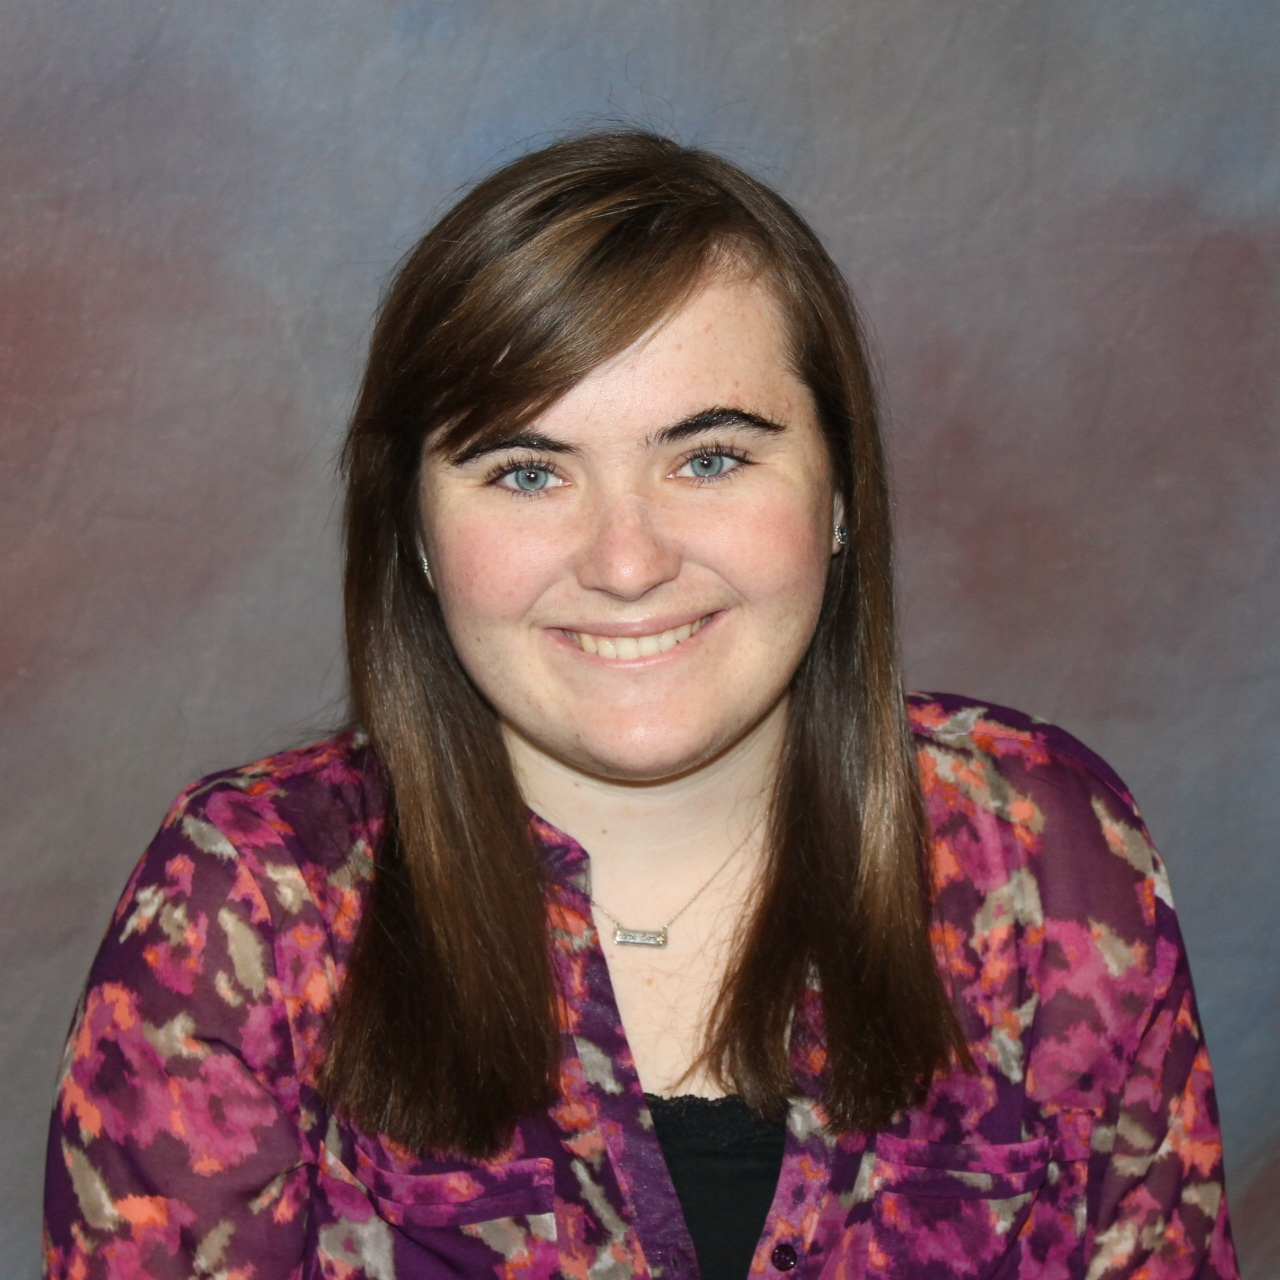 Kelly Fergus - Kelly graduated from Mercyhurst University (Erie, PA) with a Bachelor's of Arts in Art Education and a minor in Art Therapy in 2017. She is currently a VCUarts graduate student in the Masters in Art Education program and will graduate May 2019. Kelly is passionate about service-learning, community, literacy, art, and education. She loves ceramics, 3D found-object sculpture, acrylic and watercolor painting, digital photography, textiles/fiber arts (weaving, crochet, embroidery,etc), and as well as graphic design.